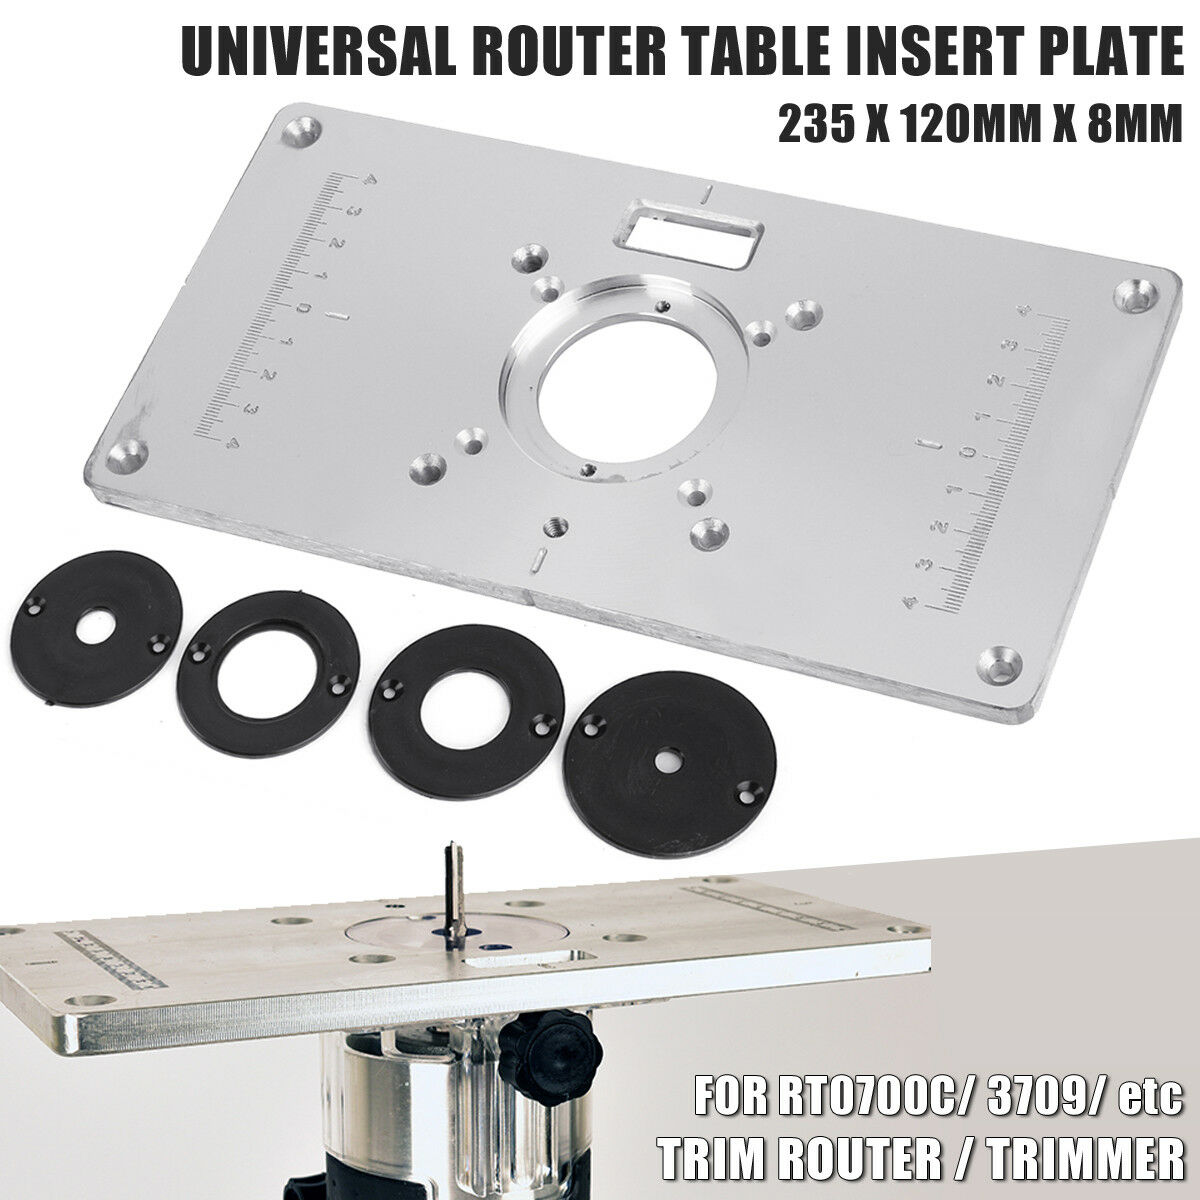 Aluminium router table insert plate for rt0700c universal trimmer aluminium router table insert plate for rt0700c universal trimmer woodworking 1 of 9 see more keyboard keysfo Choice Image